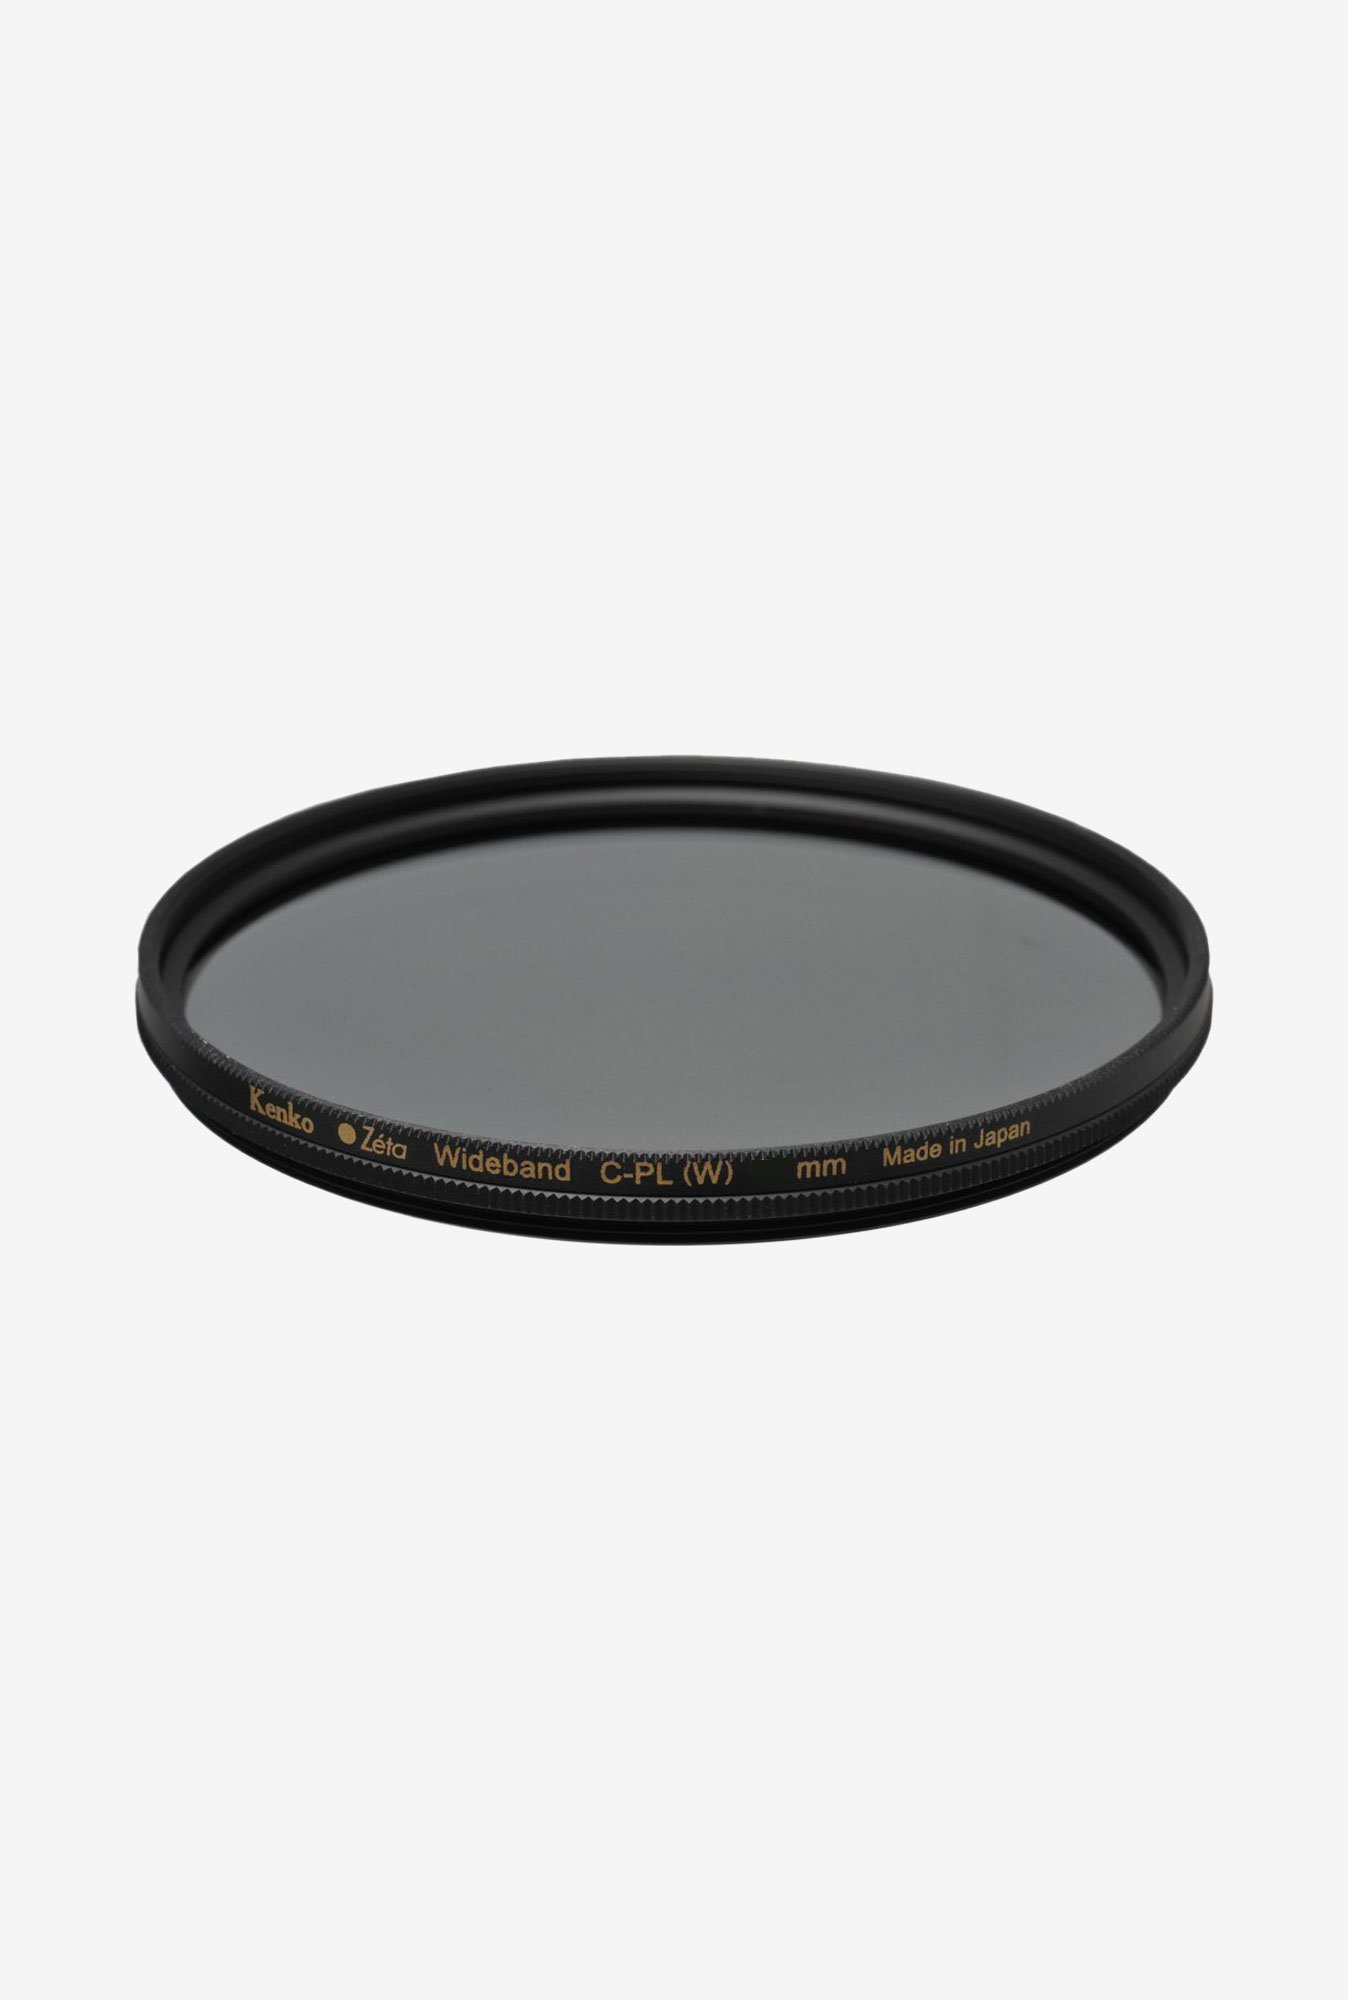 Kenko 55mm Zeta C-PL ZR-Coated Camera Lens Filter (Black)